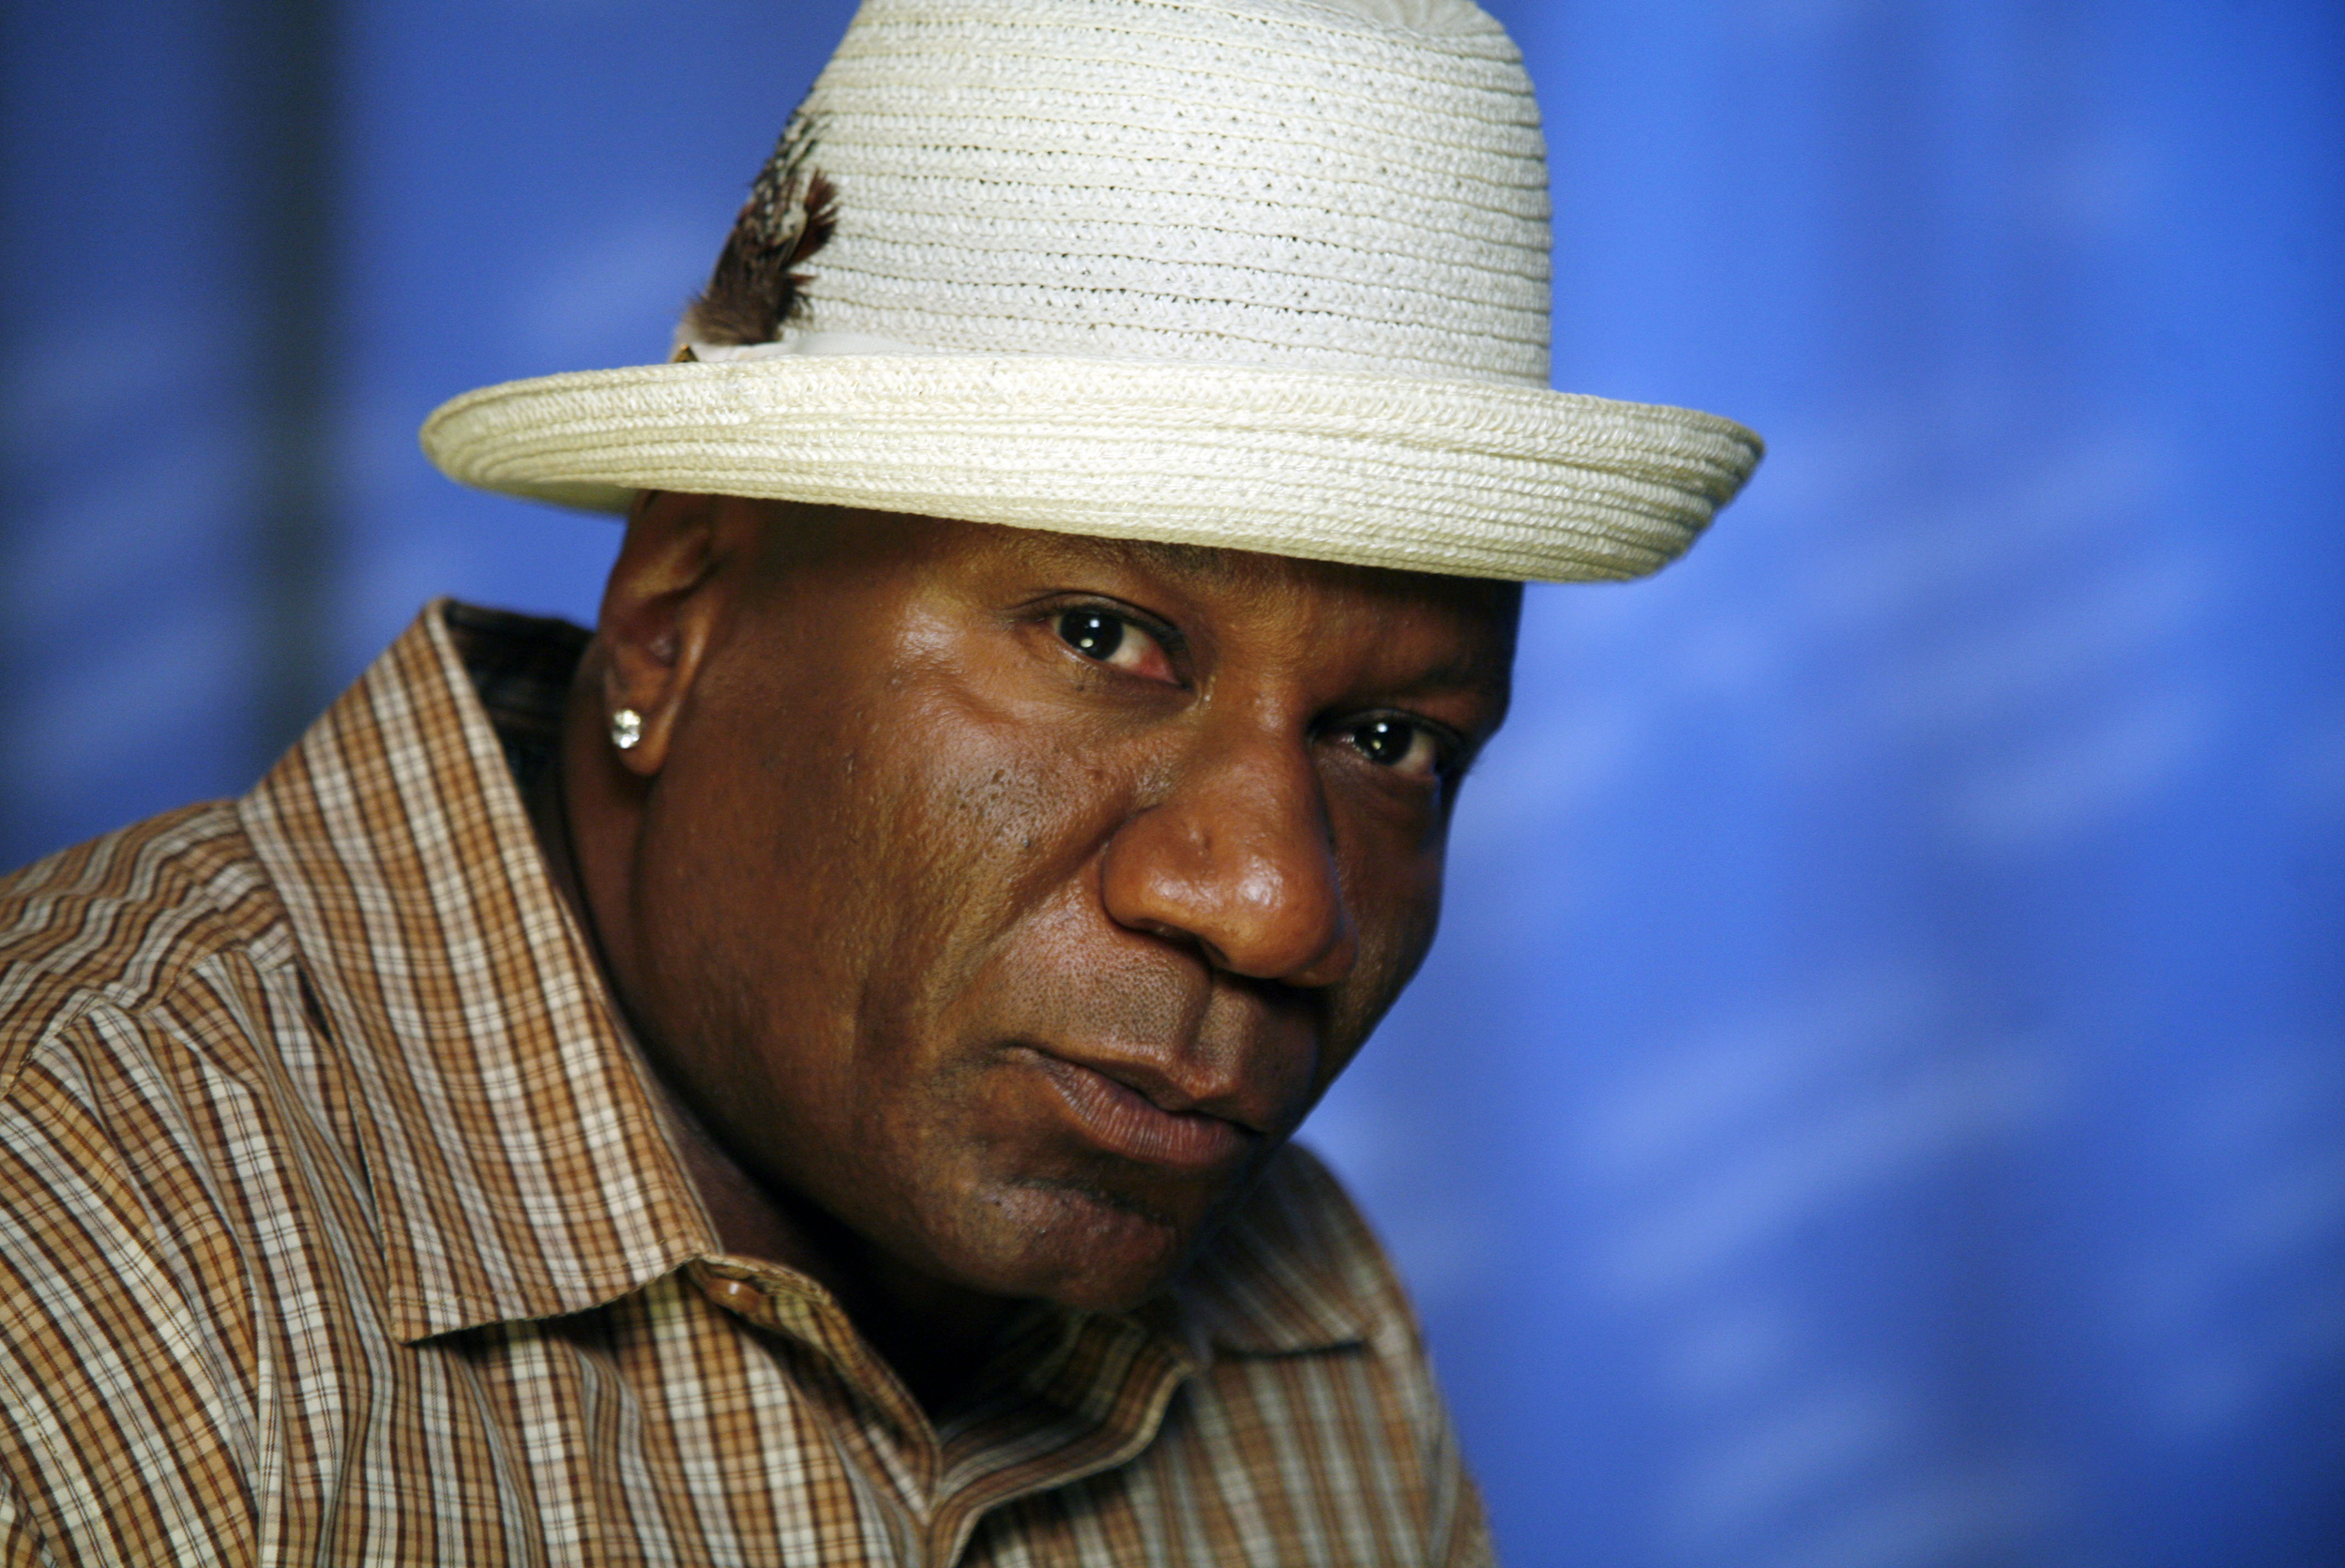 b21fcea8 Actor Ving Rhames said neighbor called 911 to report him as 'a large black  man' breaking in